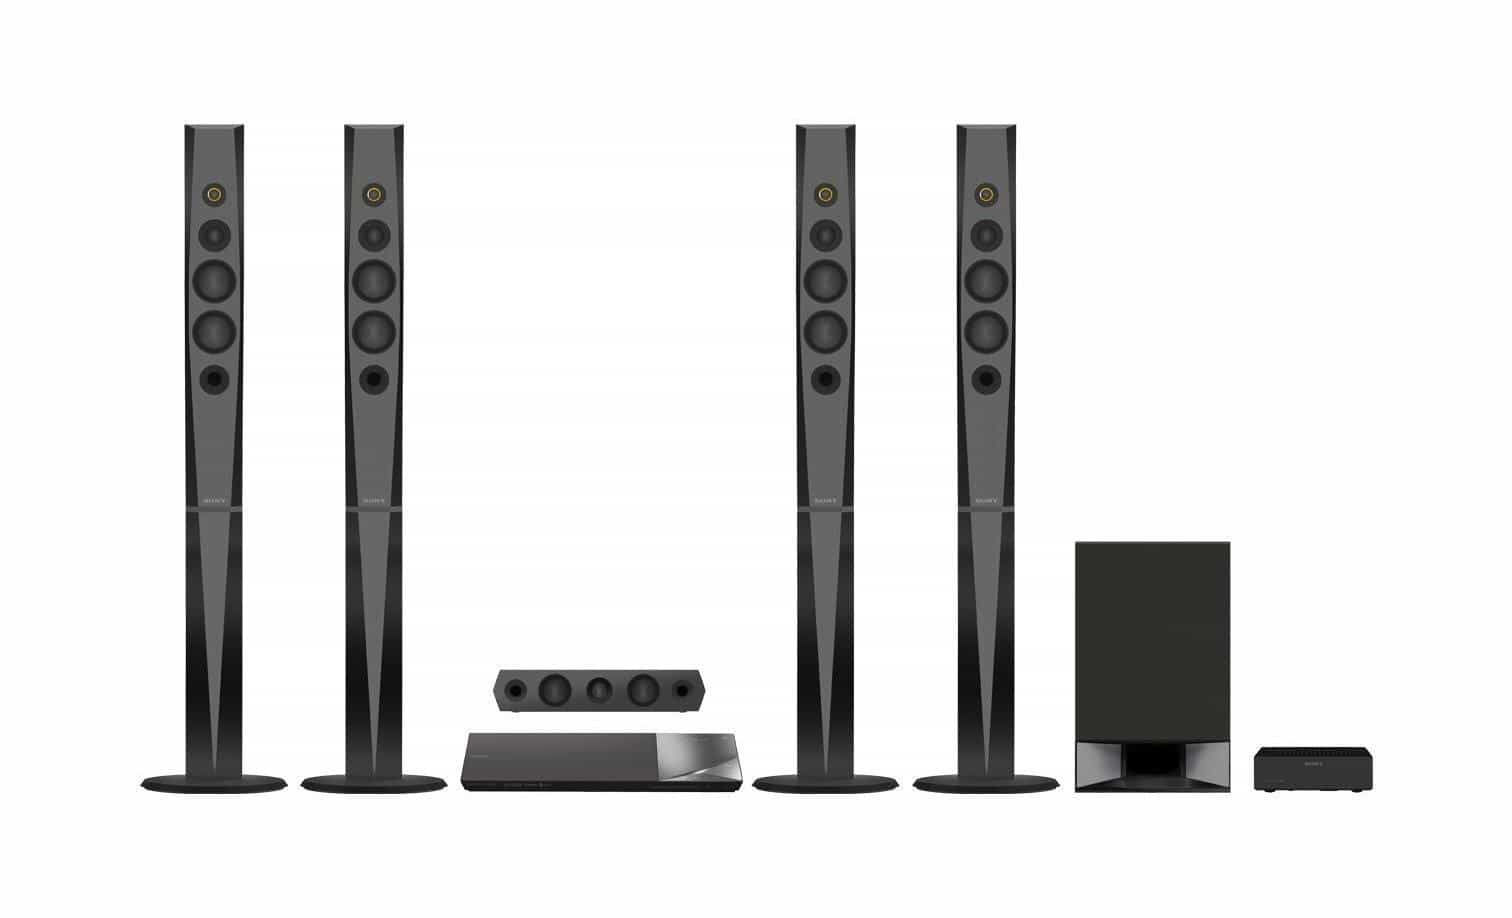 Compare Sony Home Theater 5.1  CH,  1200W 3D  Blu Ray at KSA Price